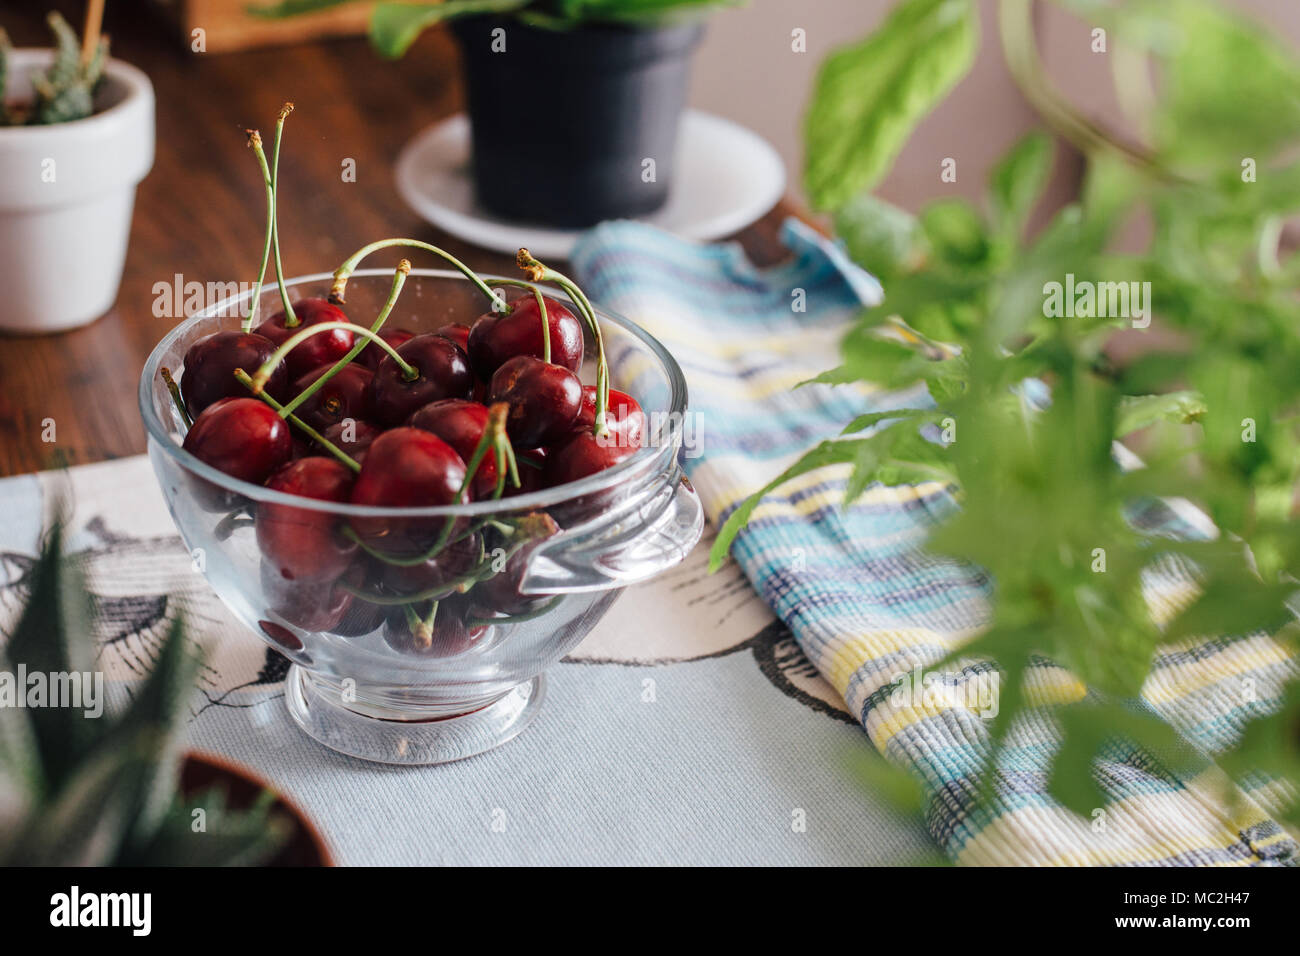 Ecological cherries in glass bowl, on the table, cultivated without pesticides, of manual picking - Stock Image